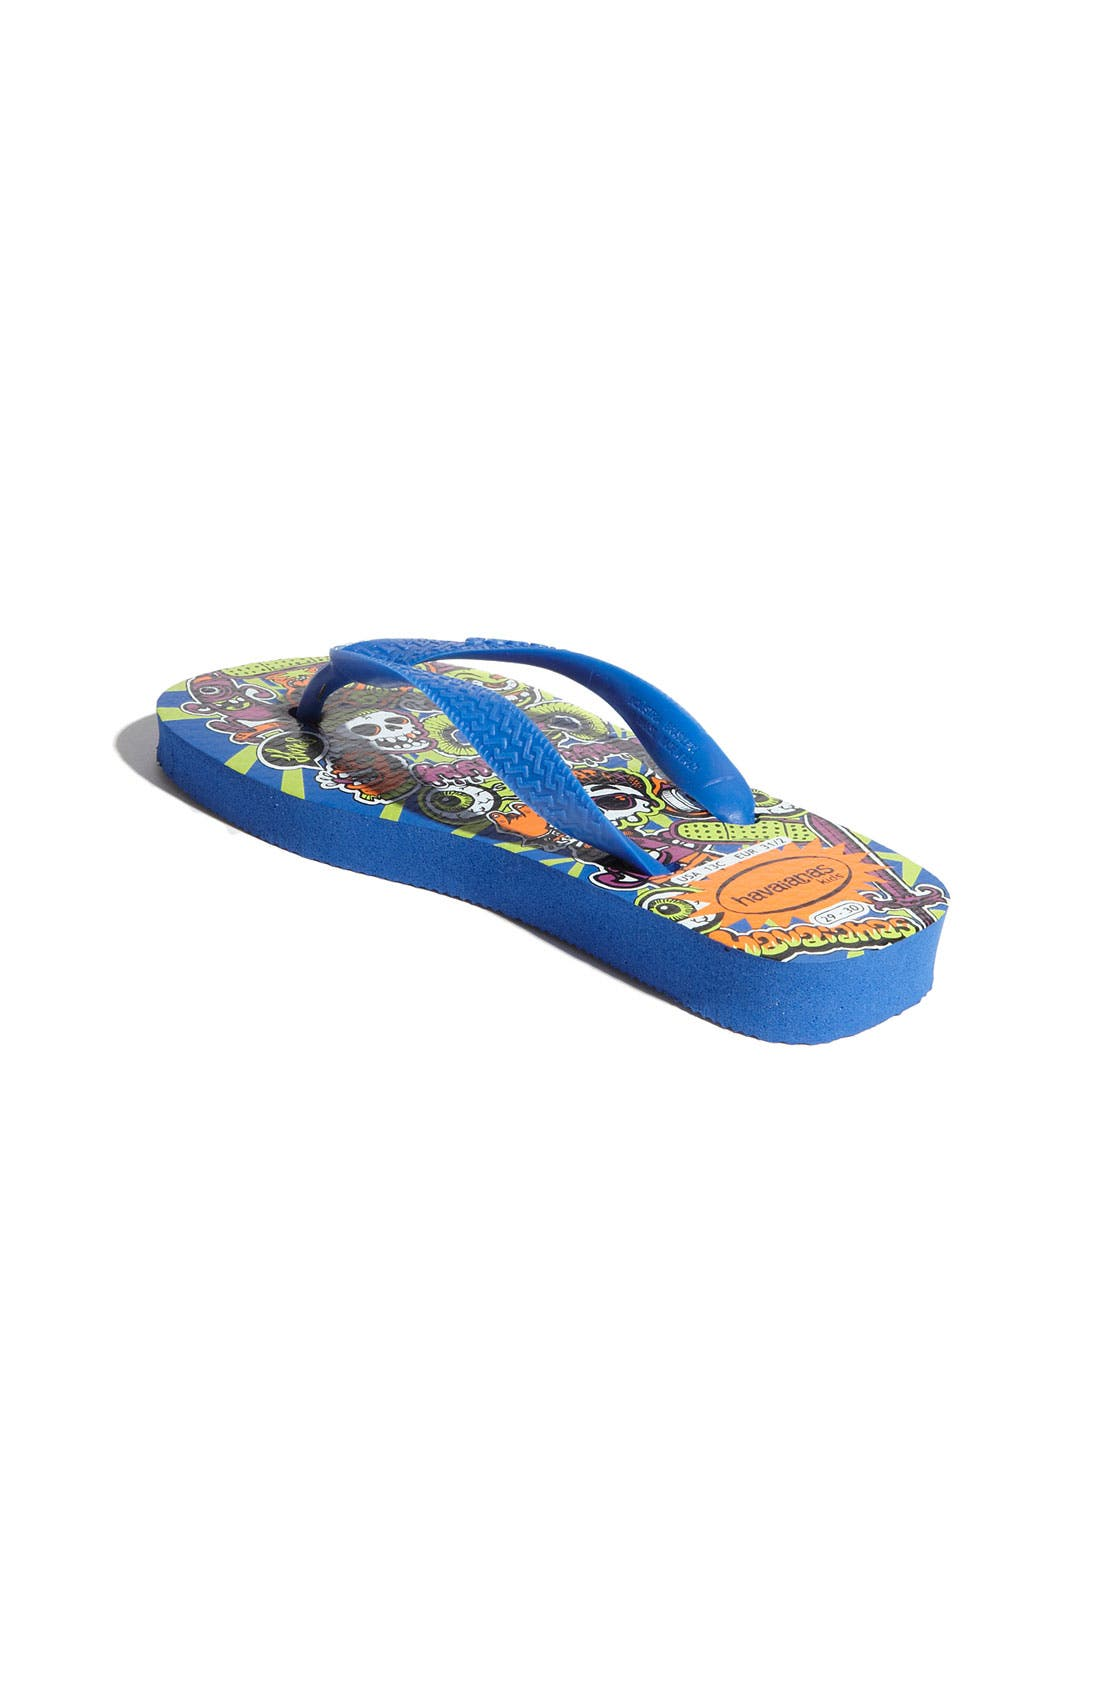 Alternate Image 2  - Havaianas 'Skate' Sandal (Toddler & Little Kid)